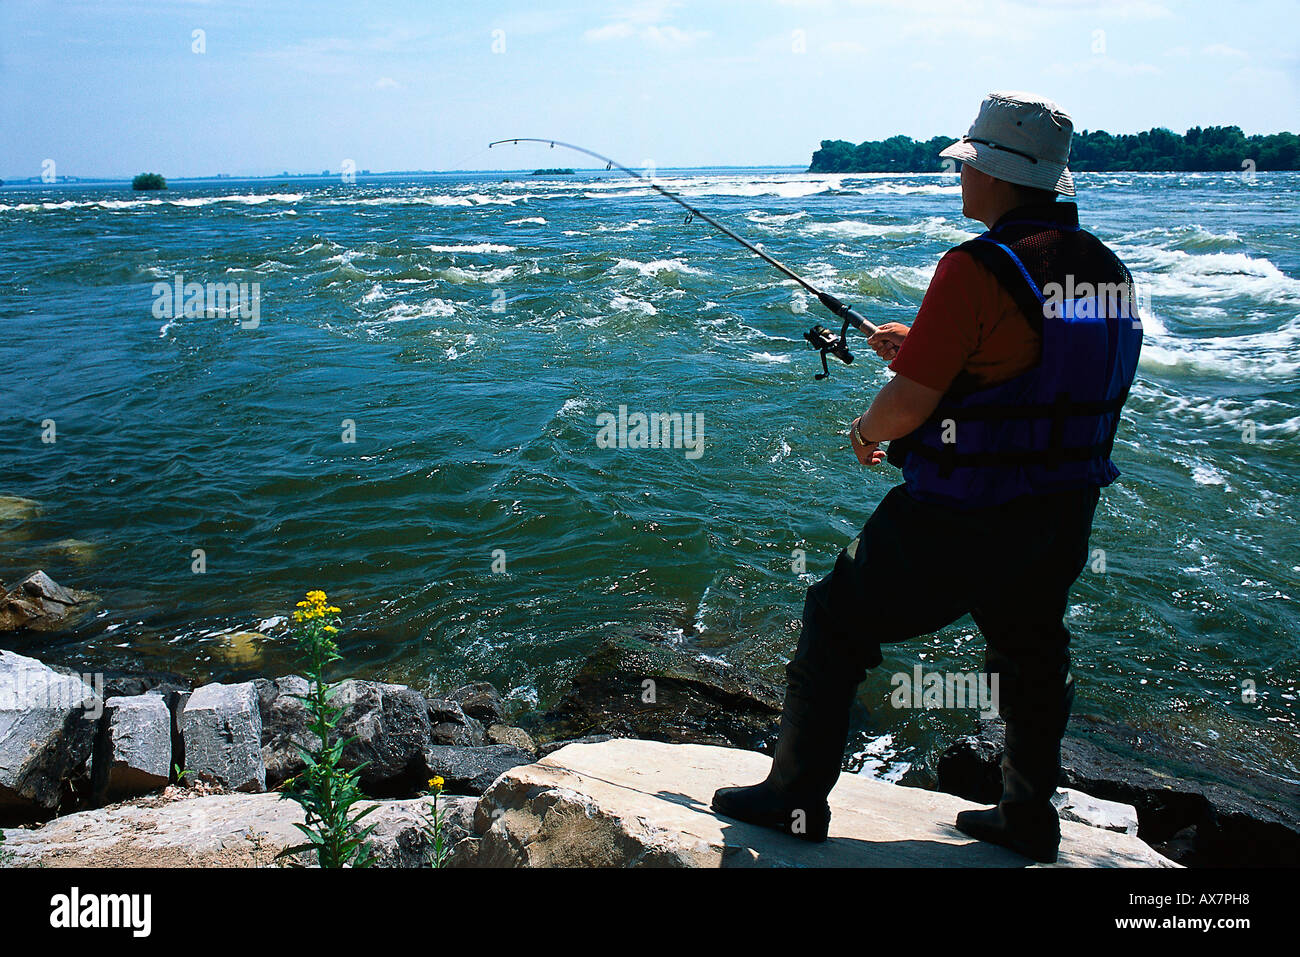 Fishing, Recreation, St. Lawrence River Prov. Quebec, Canada - Stock Image